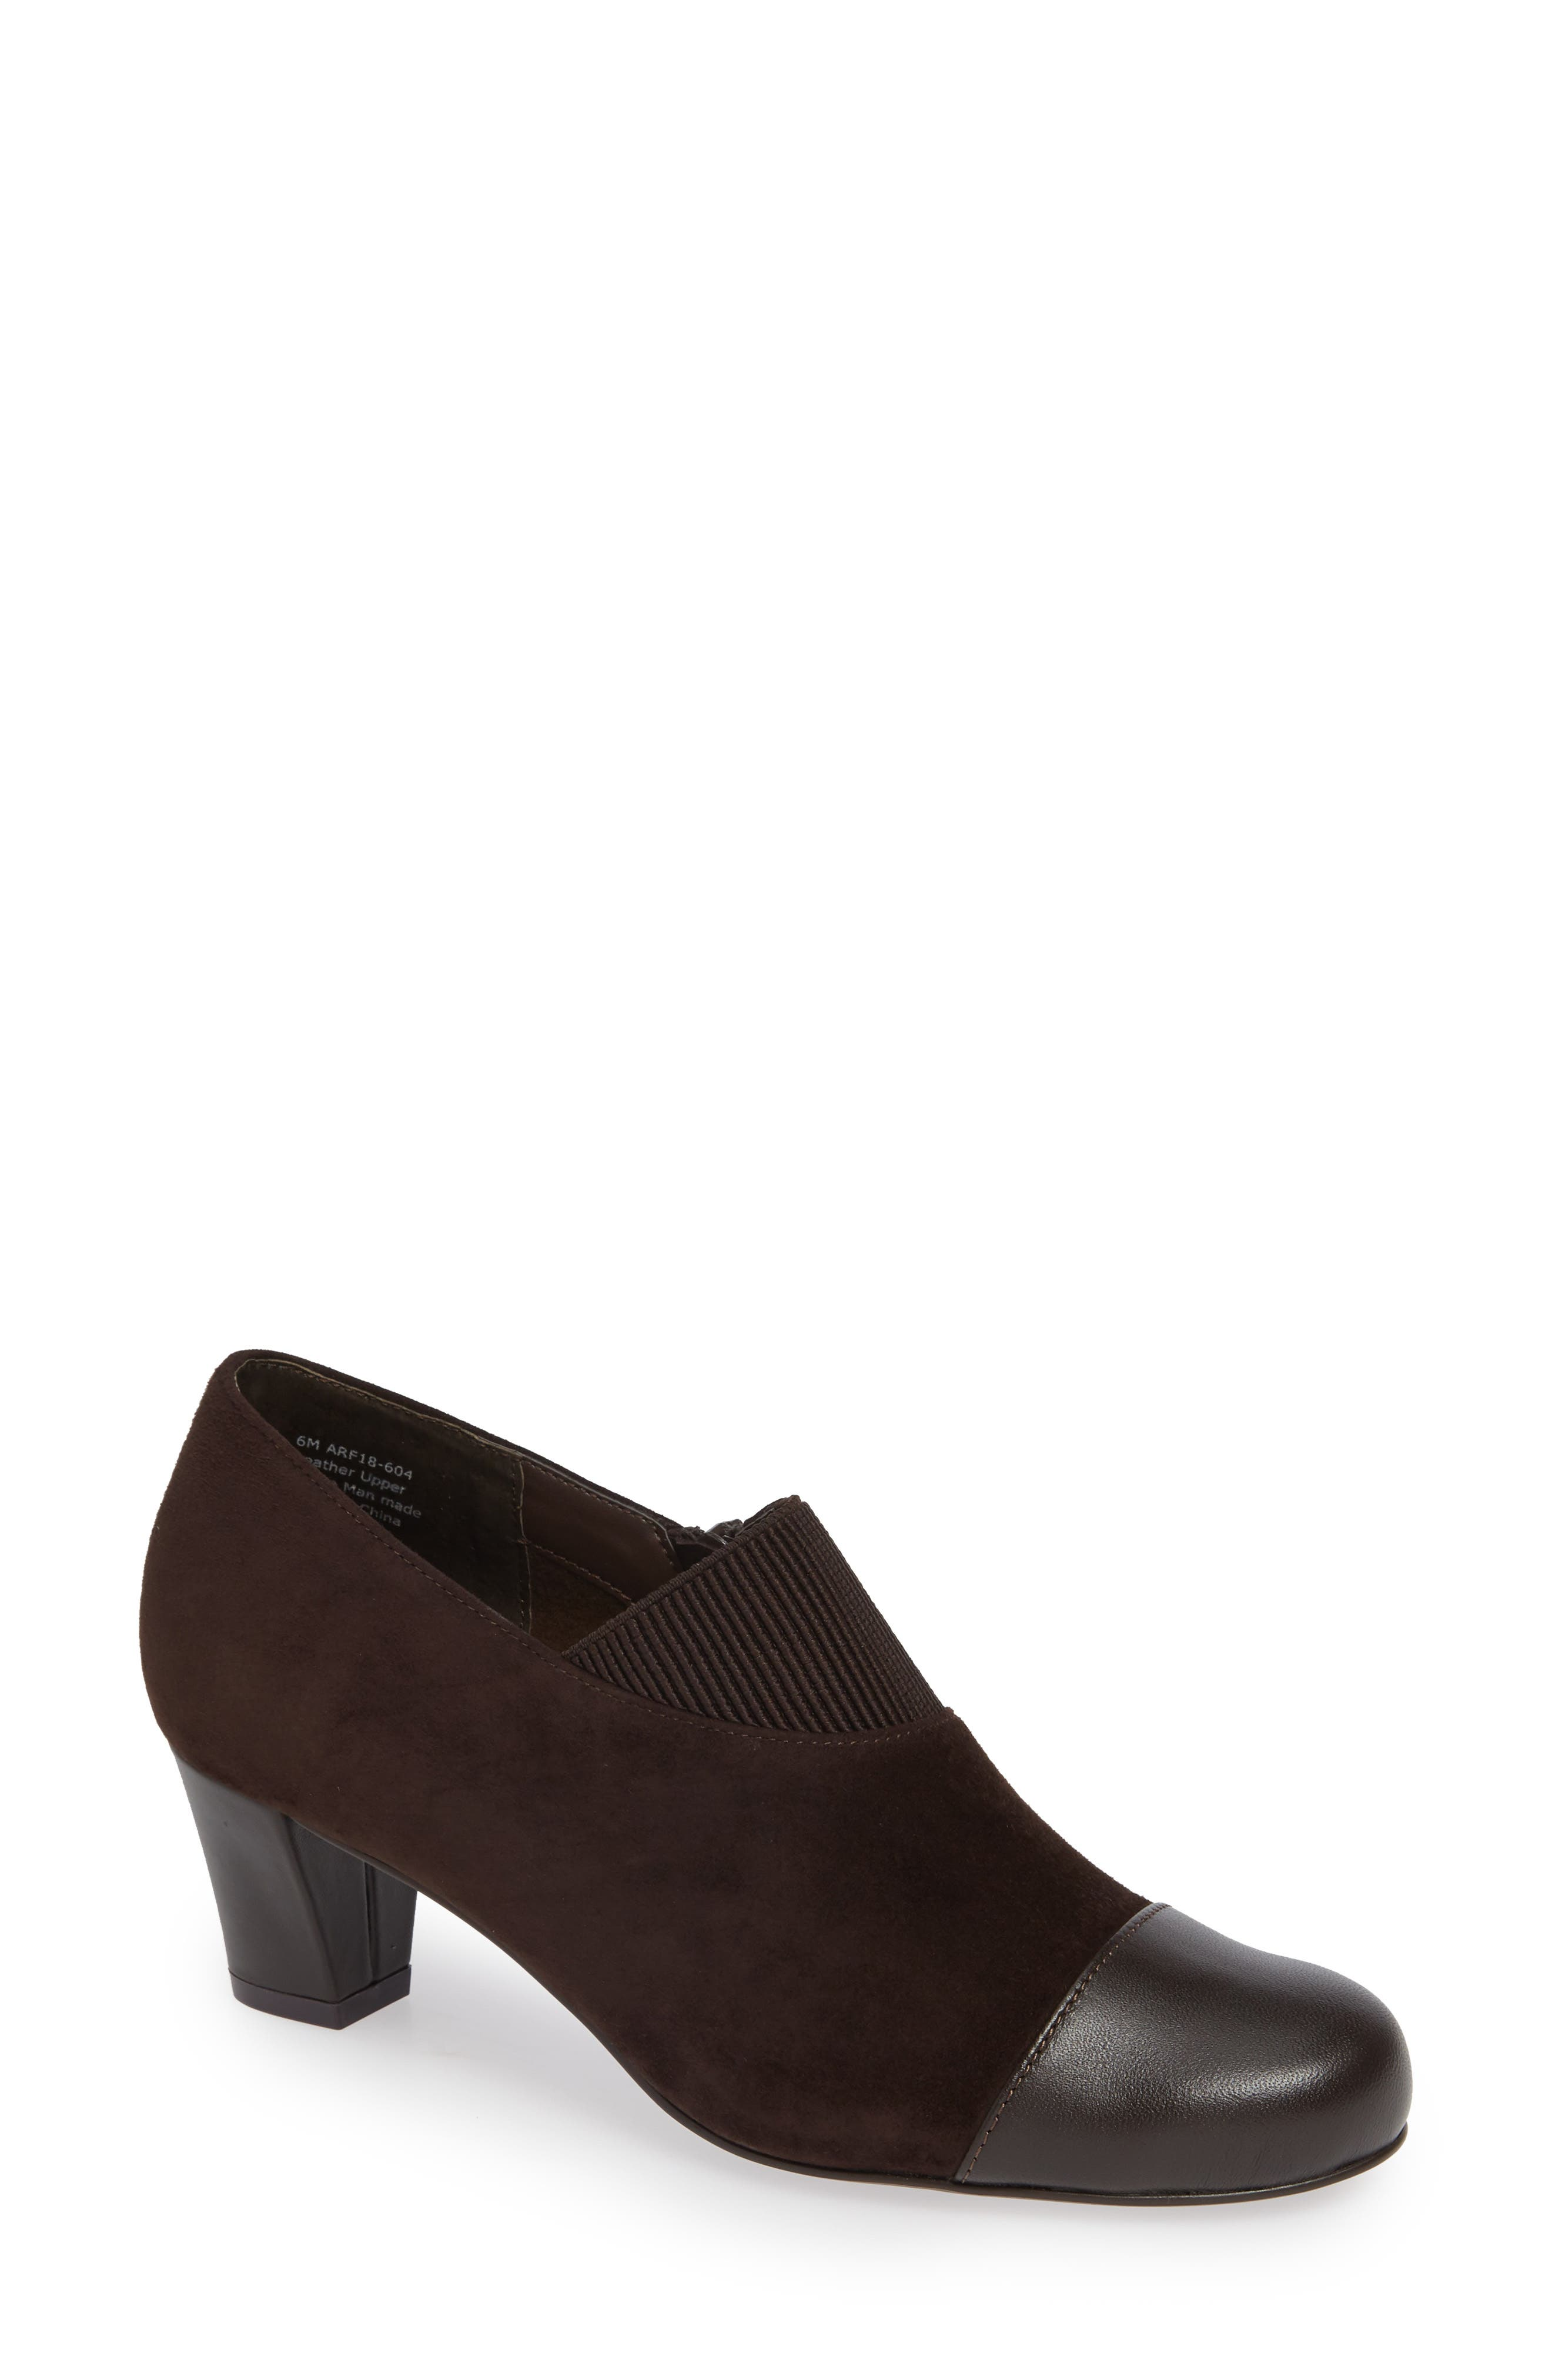 David Tate Hope Bootie, Brown